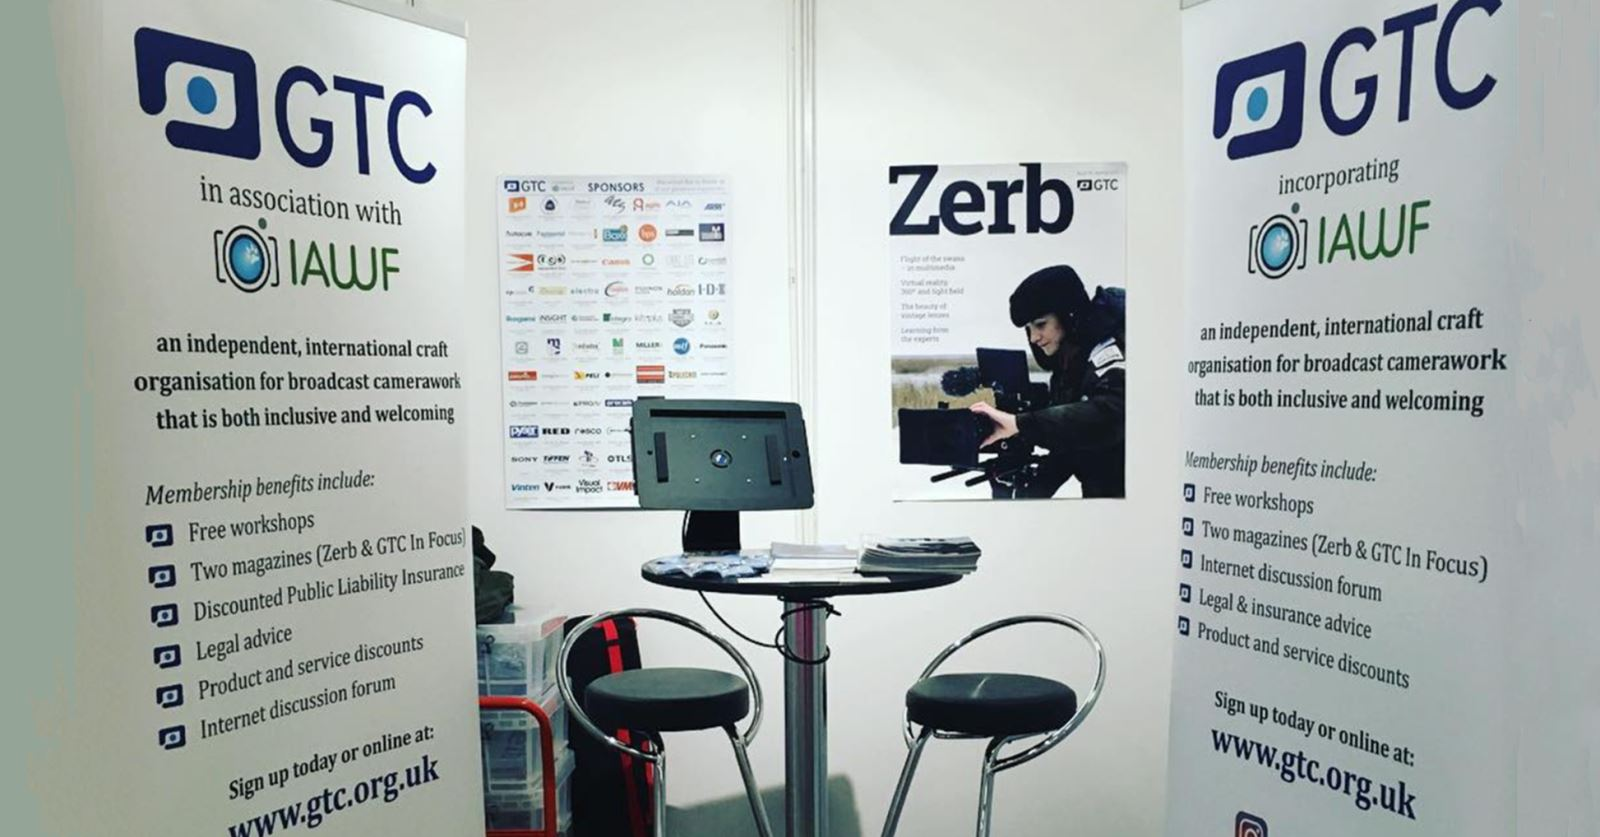 The GTC has been at the Media Production Show this week